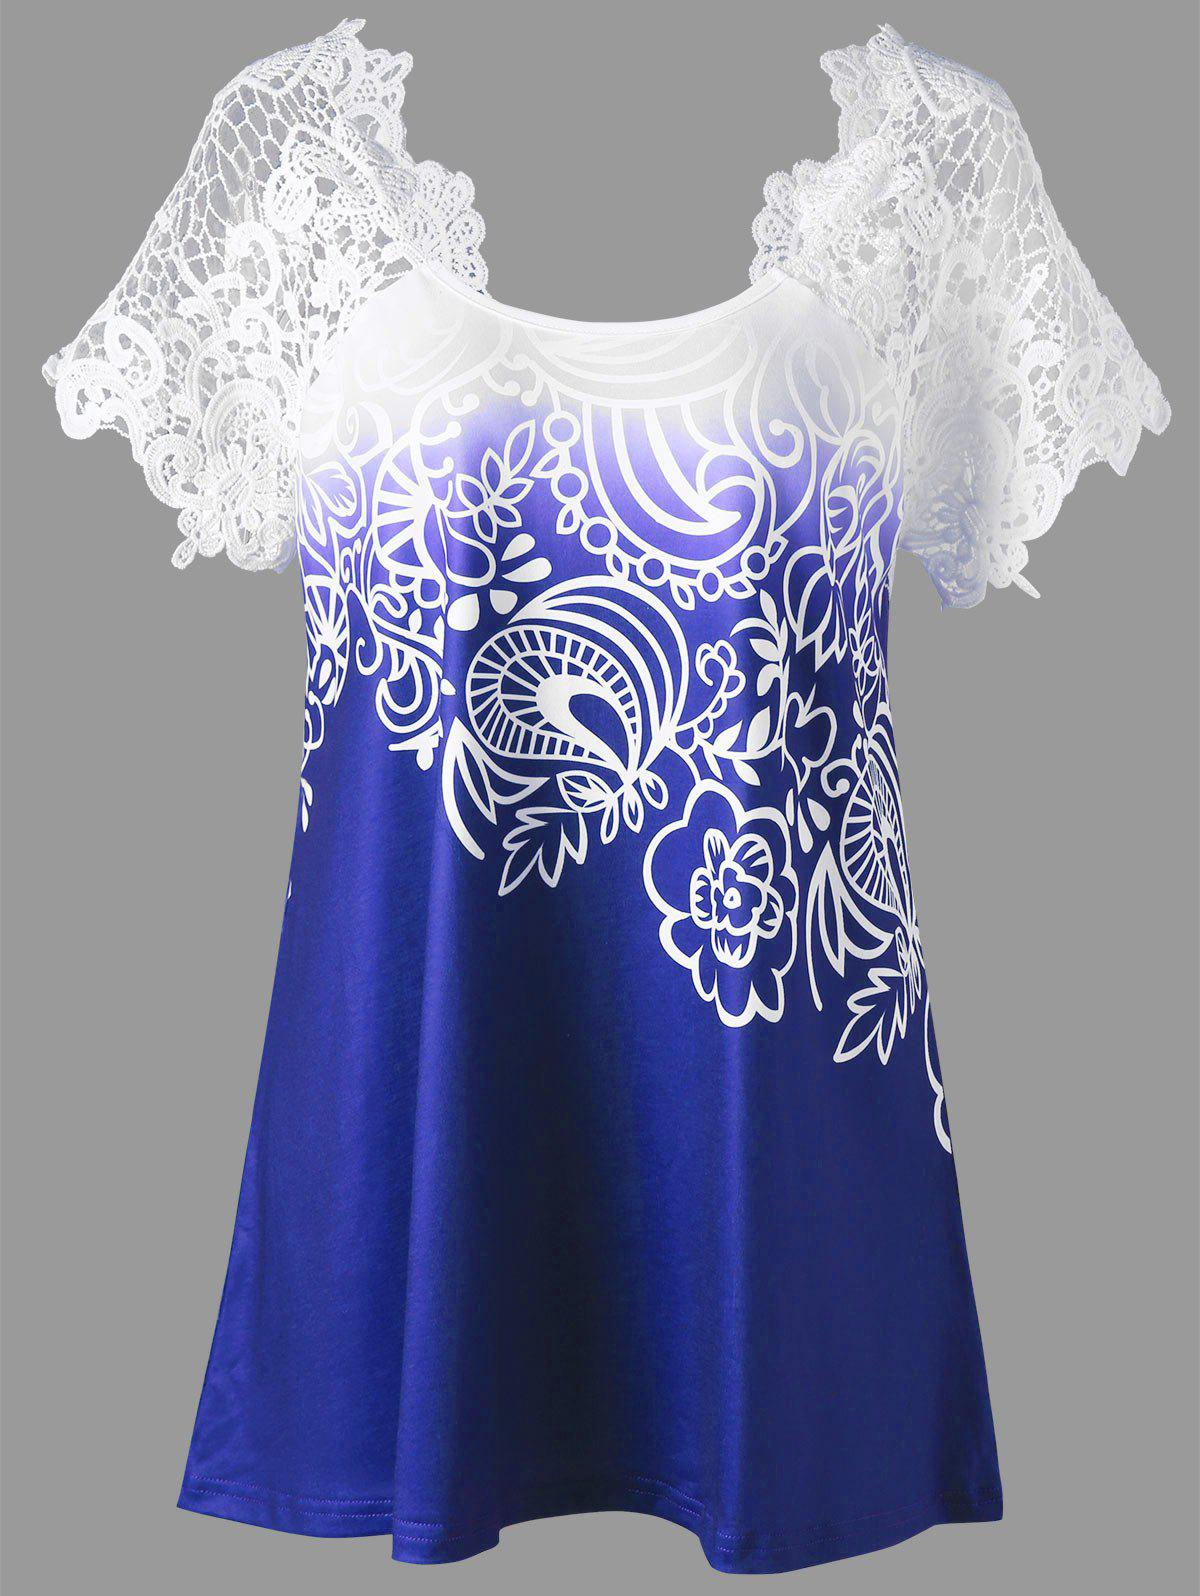 Lace Panel Raglan Sleeve Floral Plus Size TopWOMEN<br><br>Size: 2XL; Color: BLUE; Material: Polyester,Spandex; Shirt Length: Regular; Sleeve Length: Short; Collar: Round Neck; Style: Fashion; Season: Fall,Spring,Summer; Embellishment: Lace; Pattern Type: Floral; Weight: 0.2300kg; Package Contents: 1 x Top;